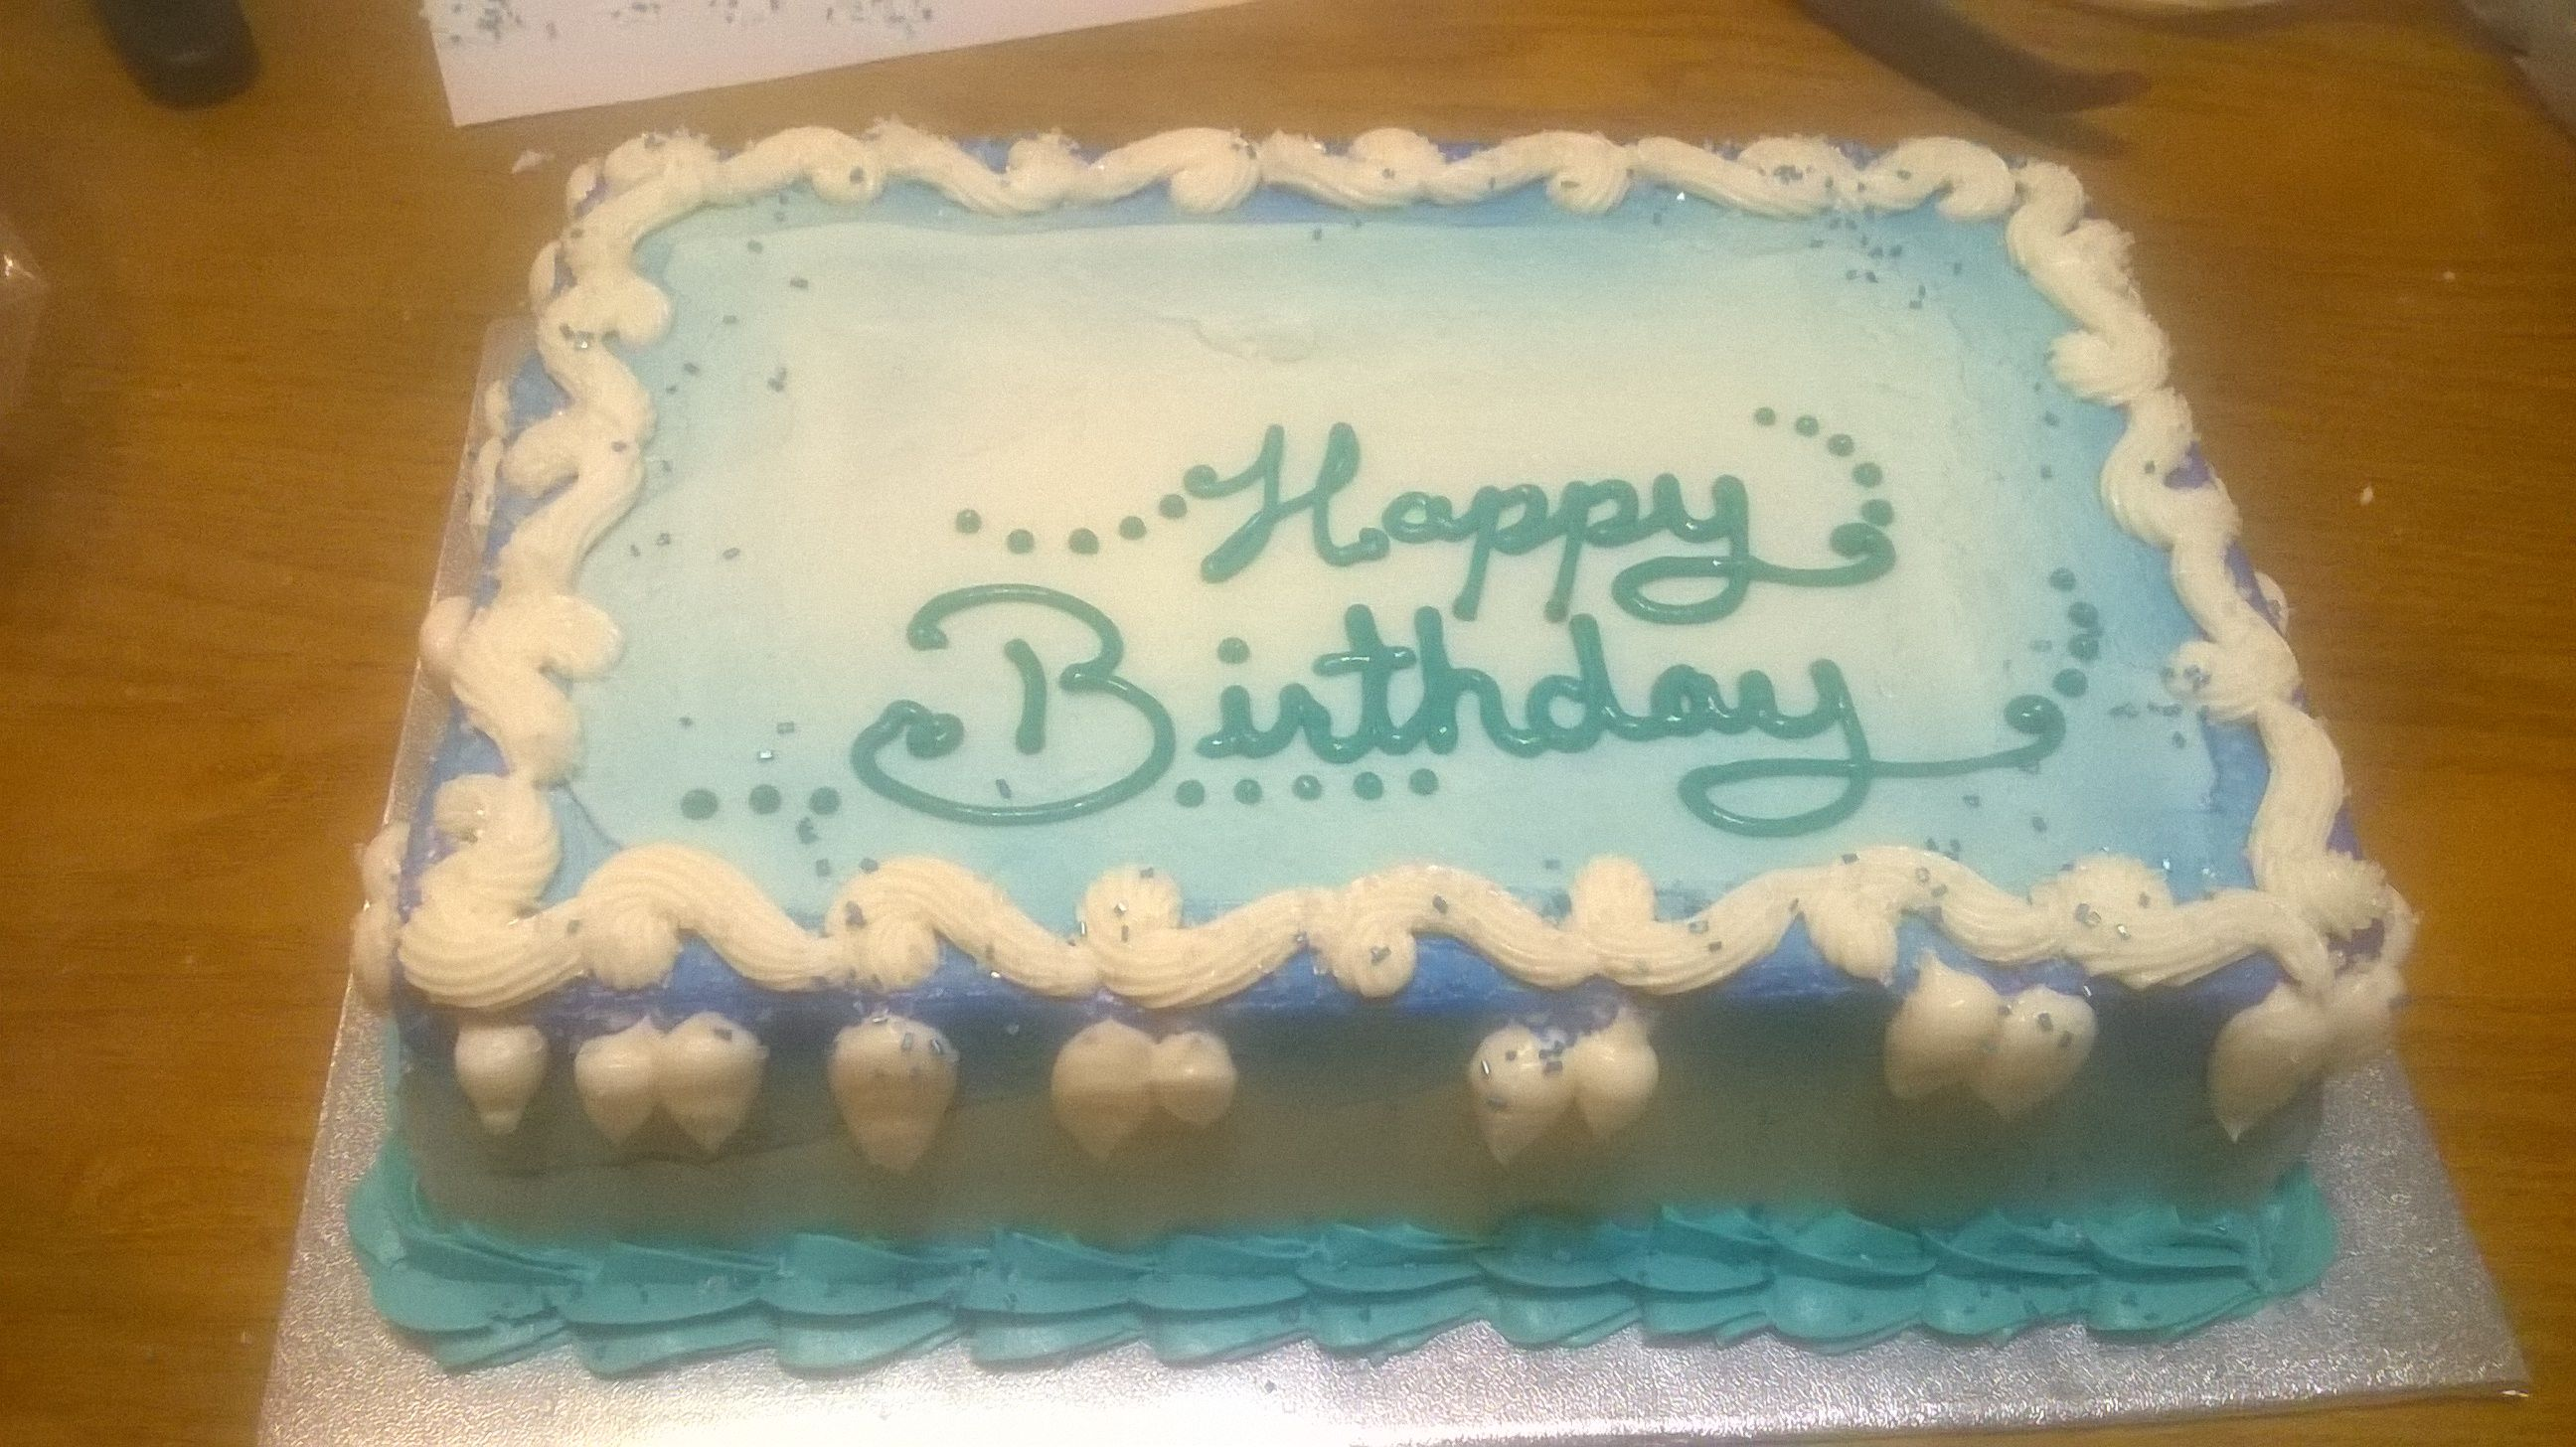 Chocolate and Vanilla Cake--Frozen theme --decorations not applied